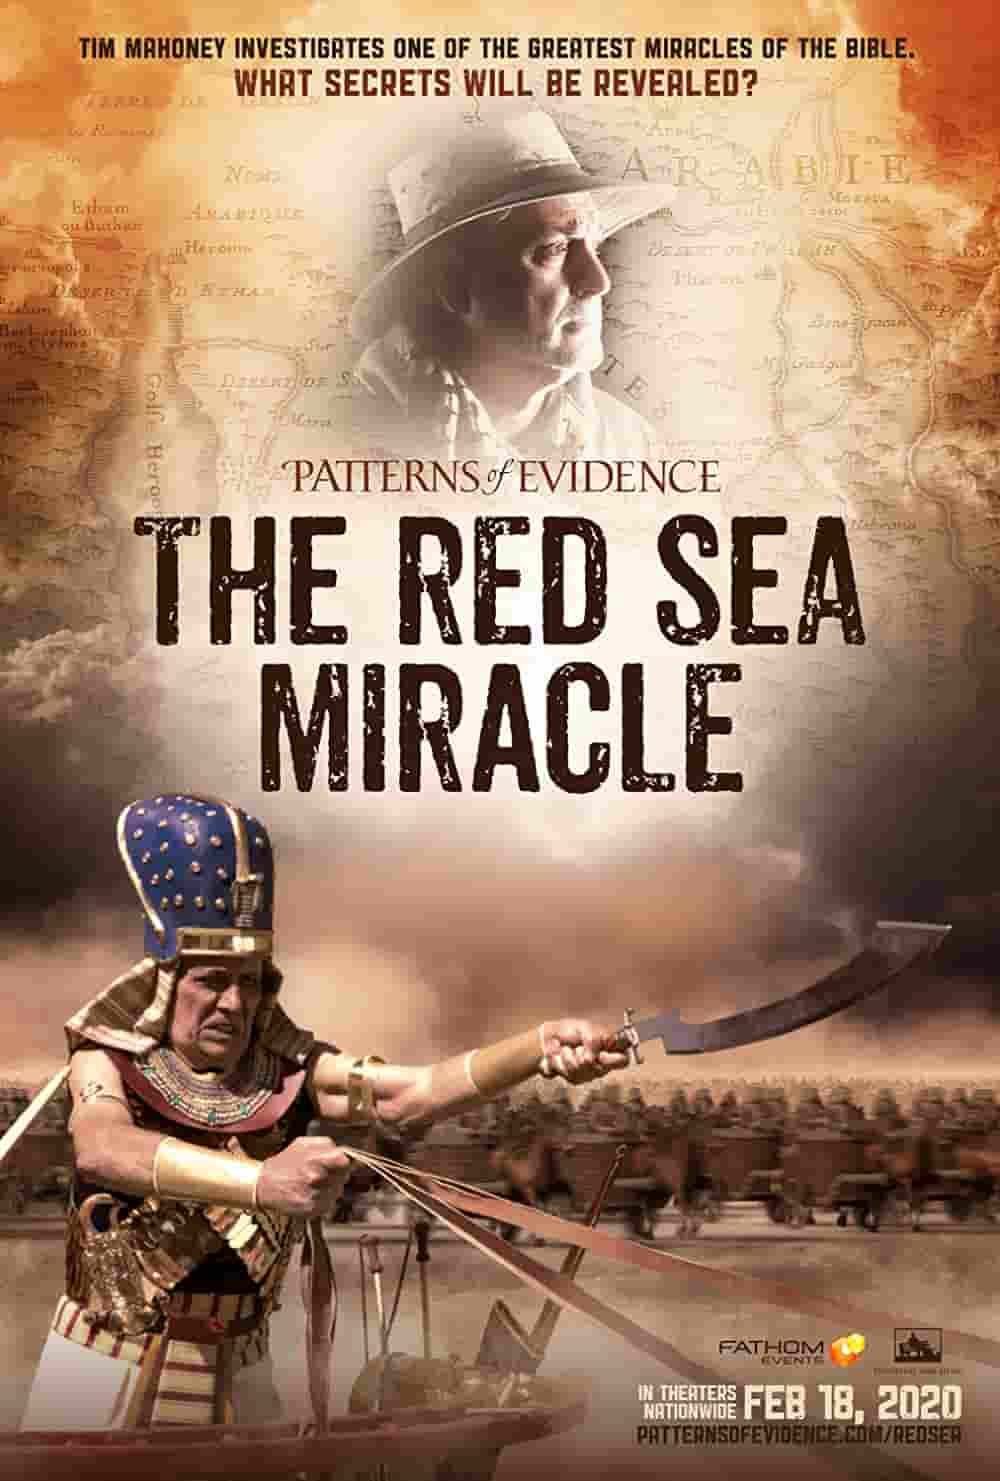 Patterns of Evidence- The Red Sea Miracle (2020) (1)